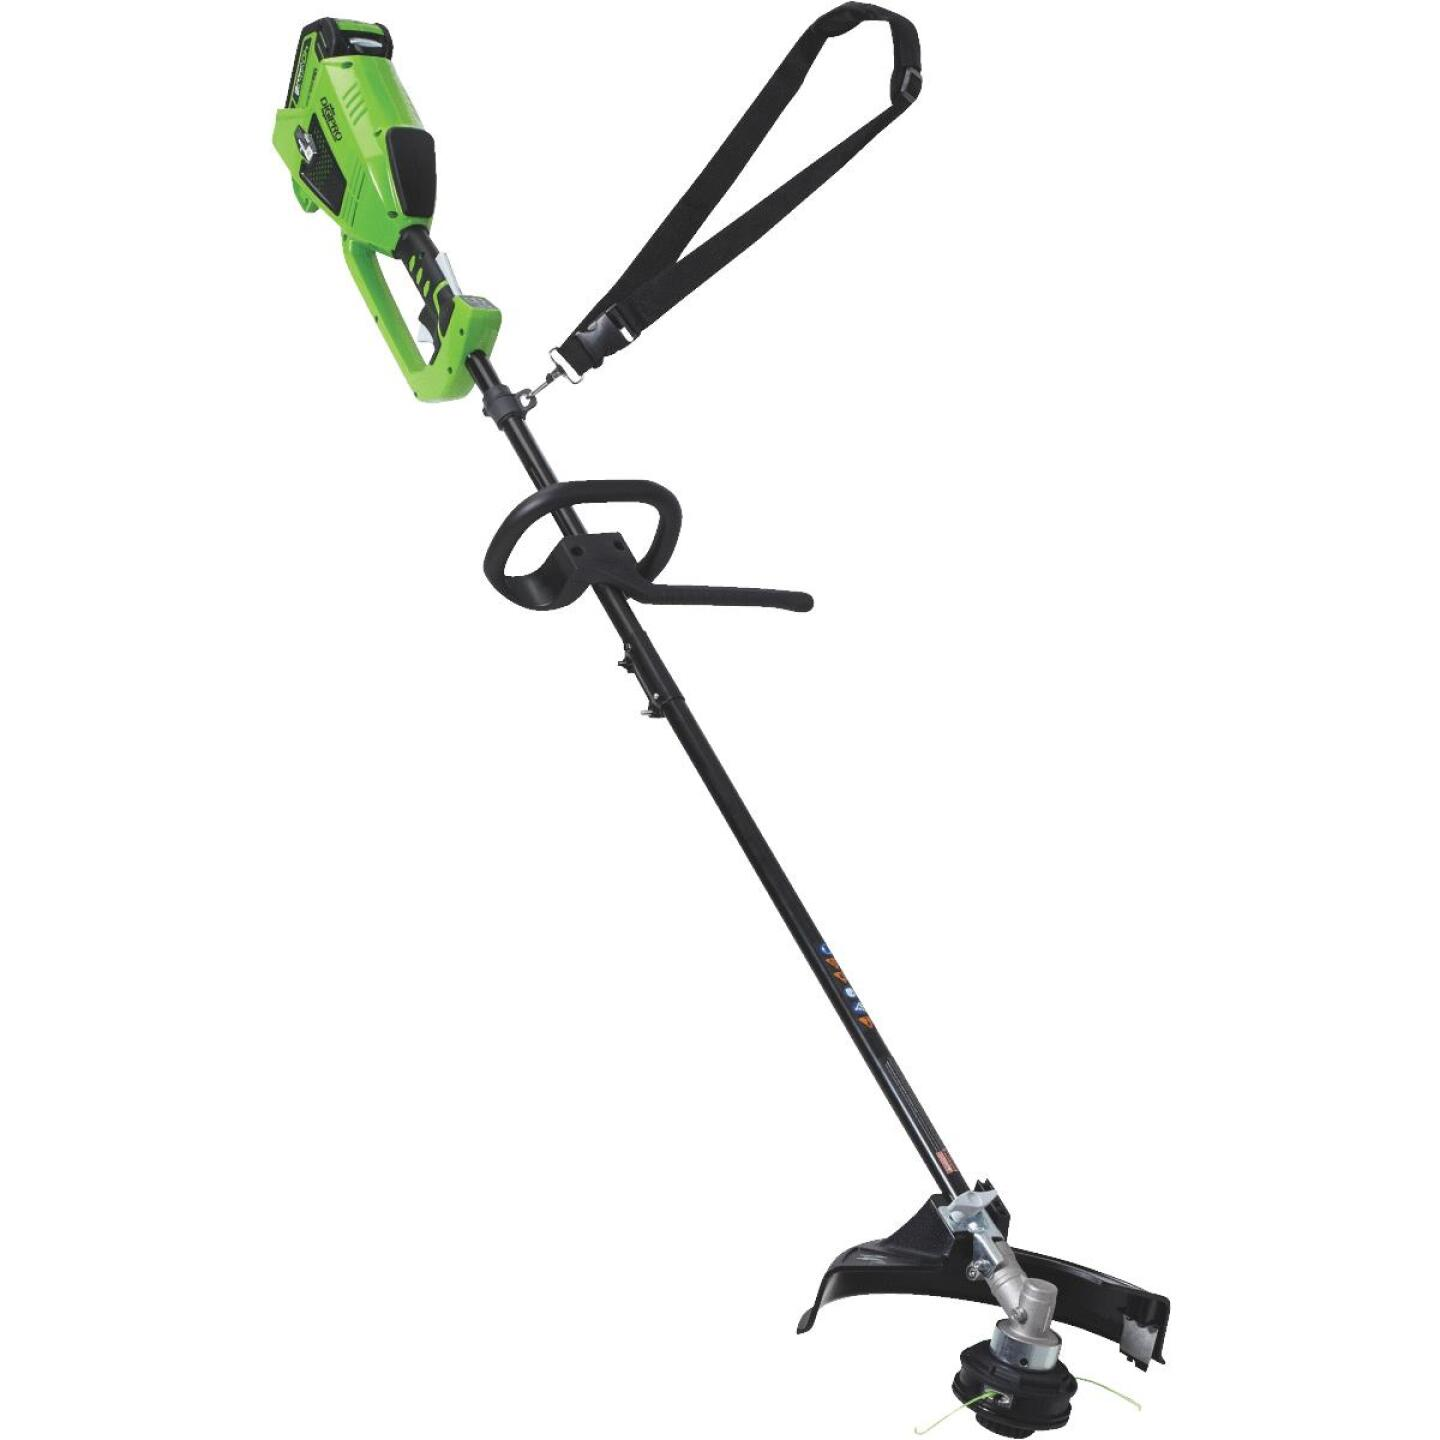 Greenworks G-Max 40V 14 In. Lithium Ion Straight Cordless String Trimmer Image 4